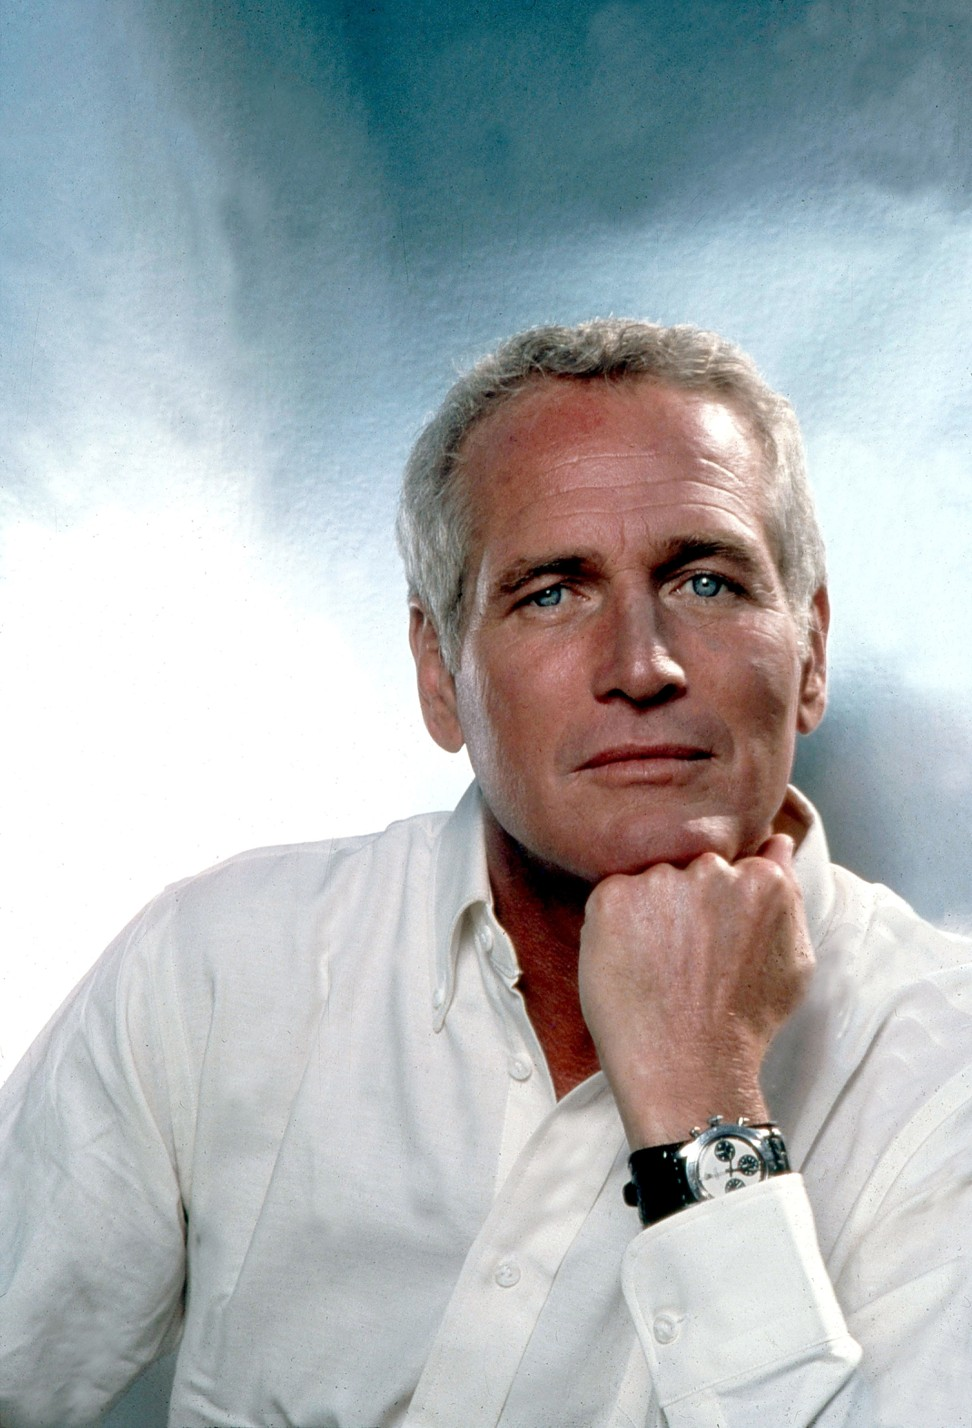 The picture that a started it all, this image was used in an Italian advertising campaign and created the demand for the Rolex 'Paul Newman'